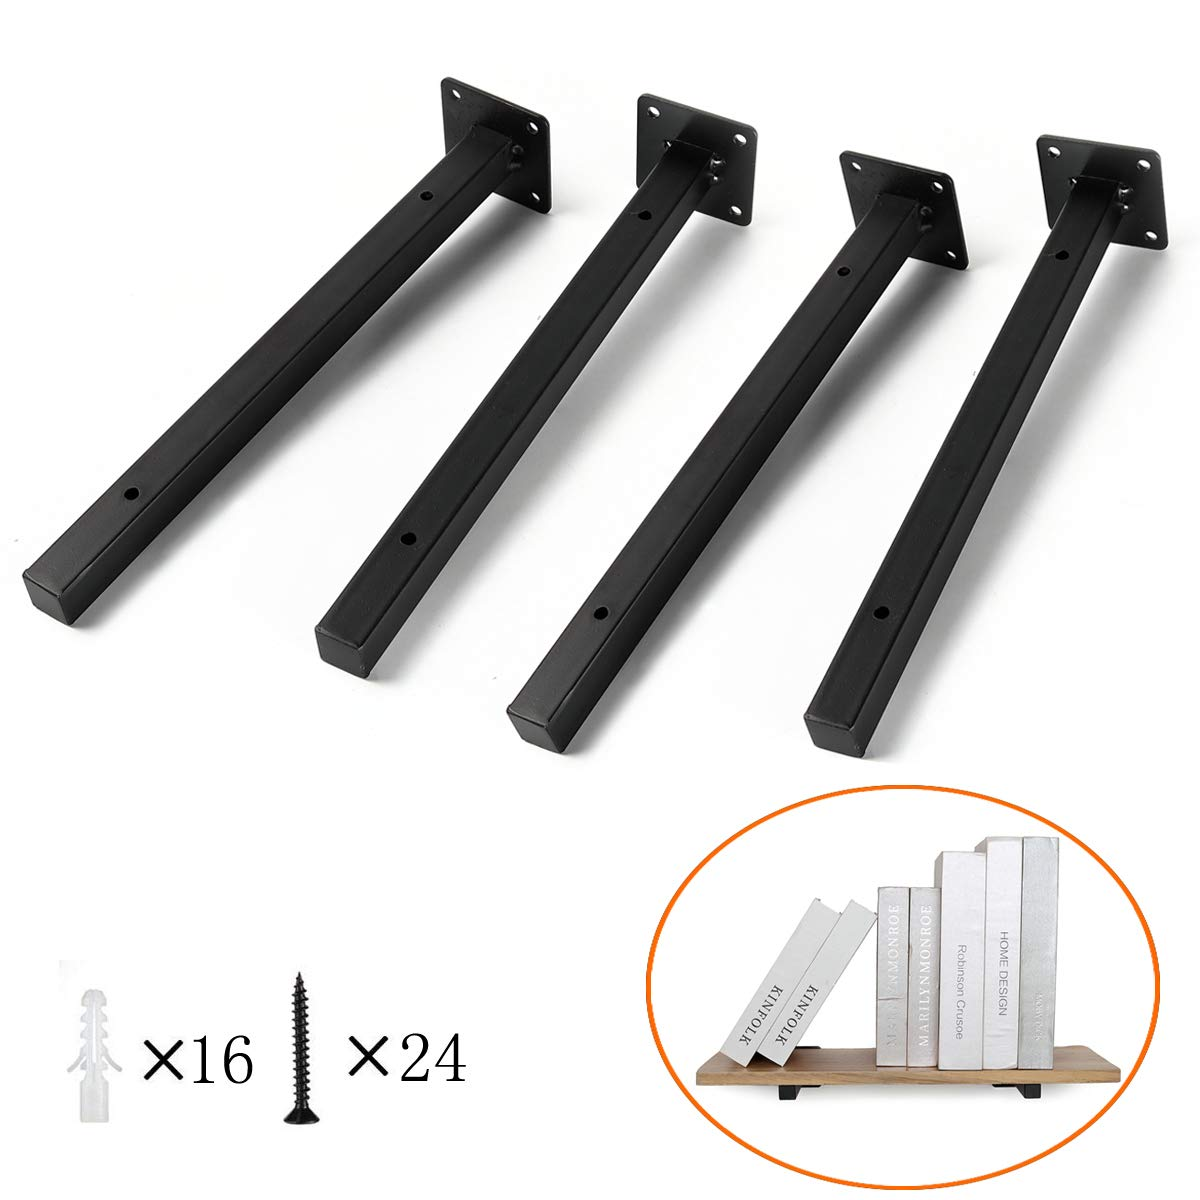 heavy duty floating shelf brackets blind supports unlock savings shelving rack kitchen looking for fireplace mantels bookshelf spacing narrow unit storage shaped metal deep closet